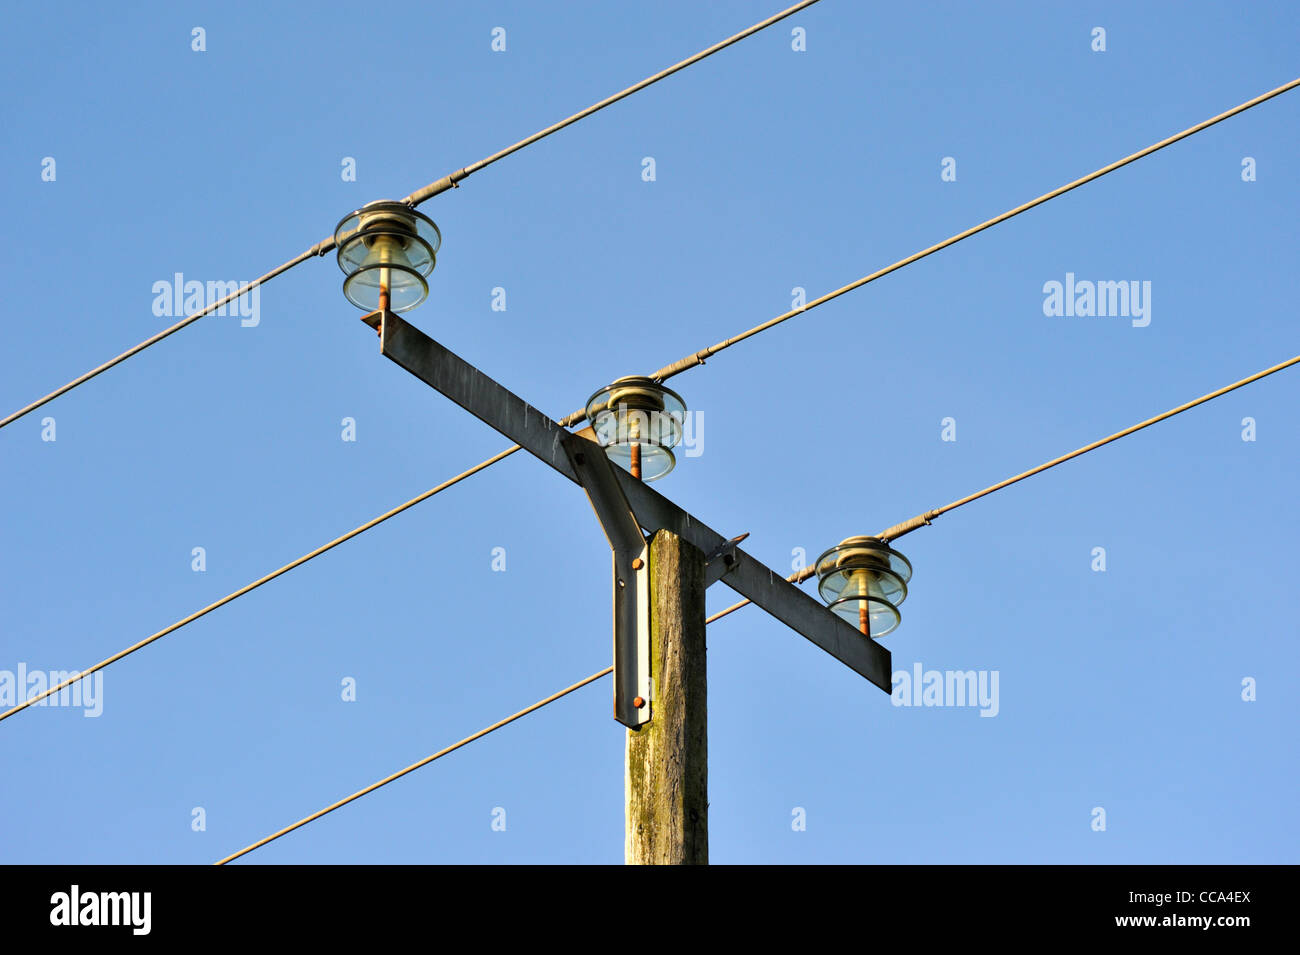 Electrical Overhead Line Stock Photos Residential Wiring Voltage Low Power Lines On Wooden Pole Newbiggin Crags Holme Cumbria